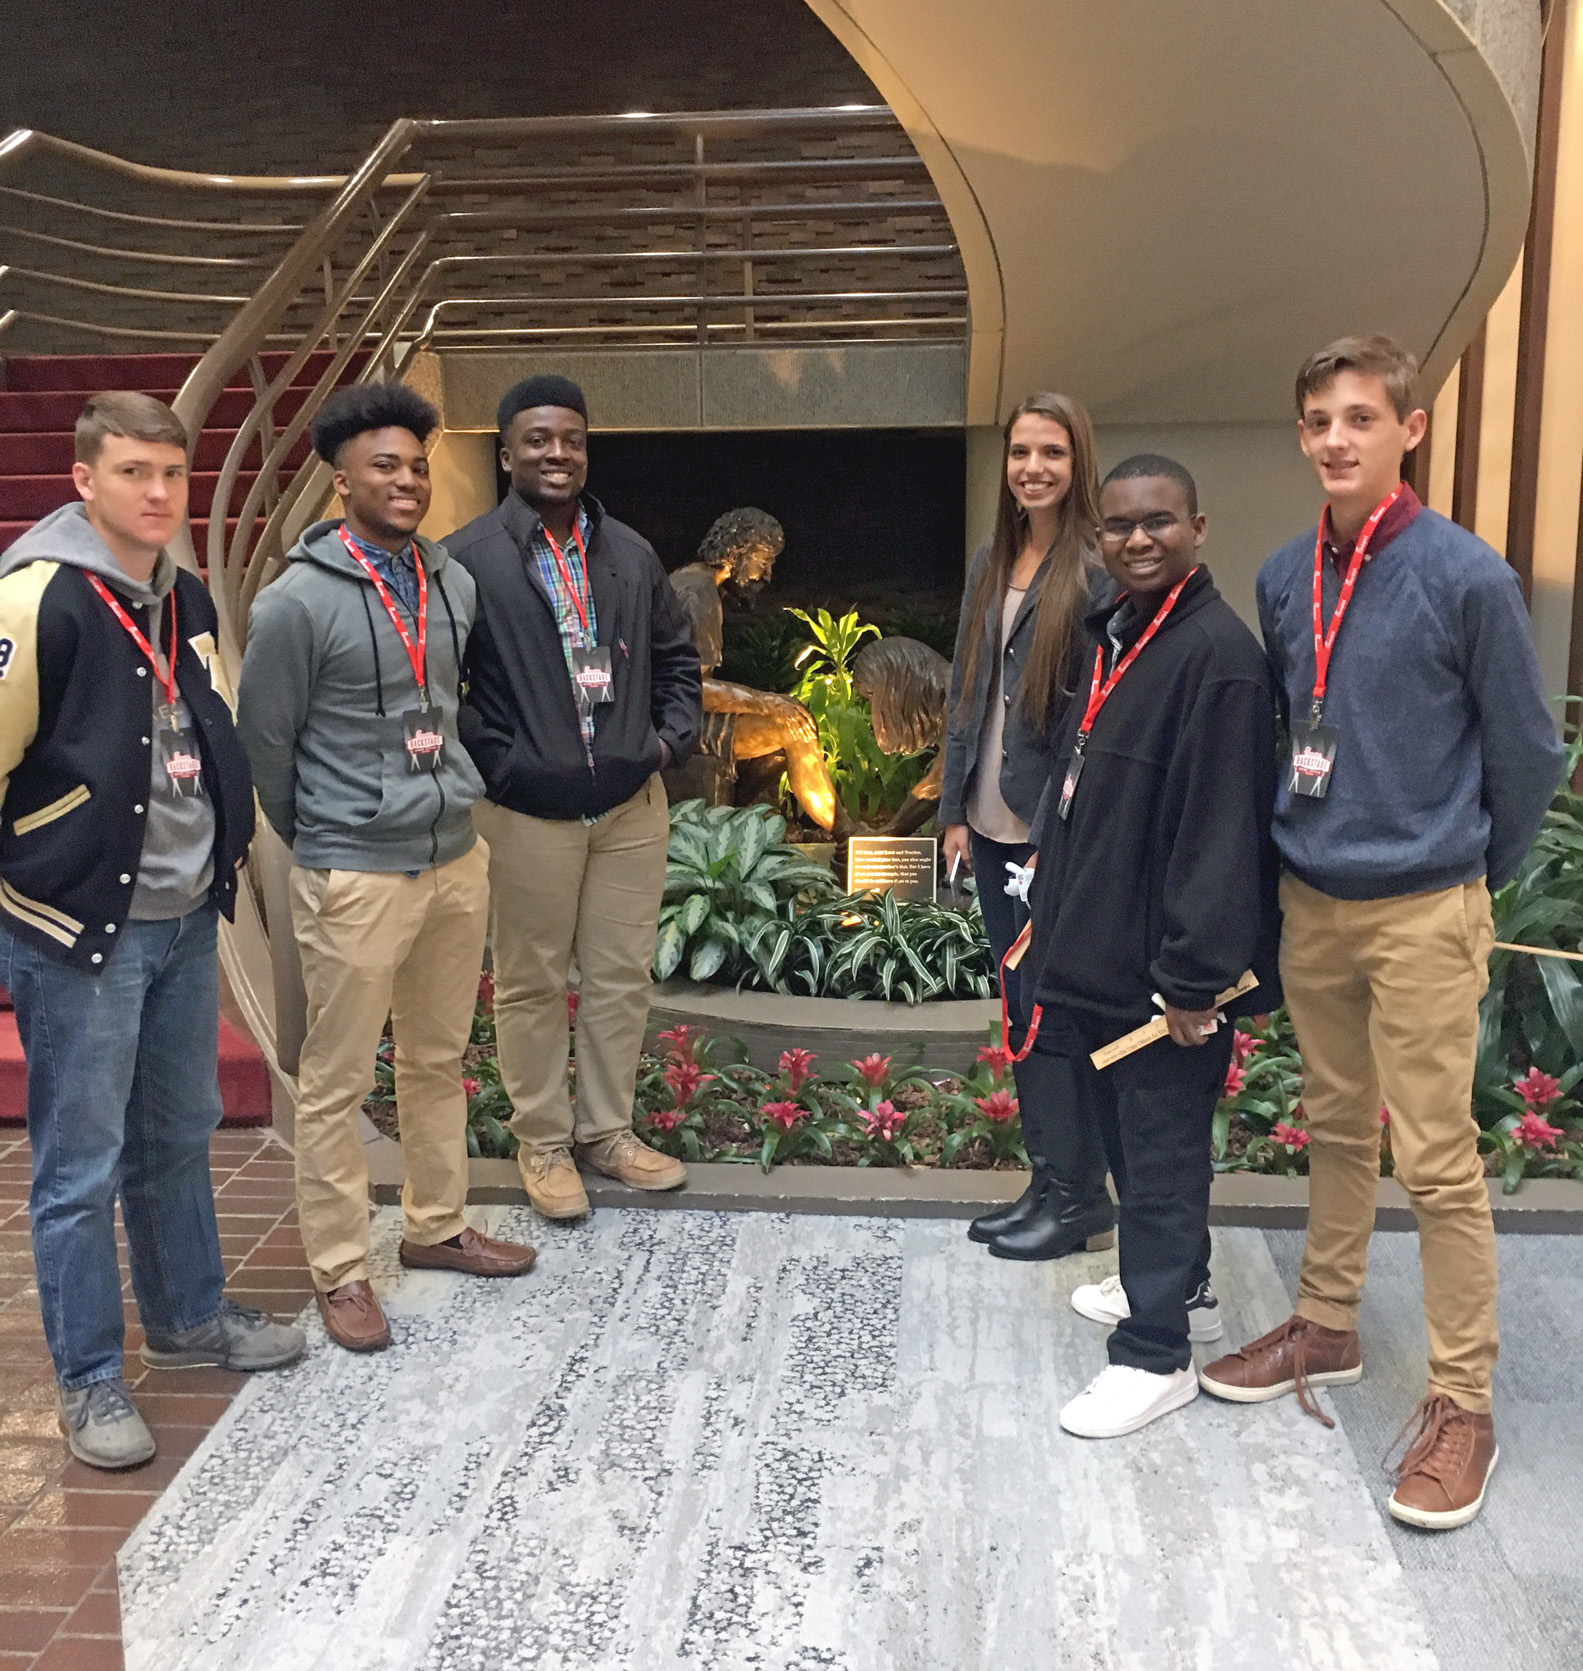 TCCHS student leaders (left to right) Jonathan Mills, Carlie Dismuke, Robert Scott, Kennedy Ward, Cameron Hadley and Zach Goff stop in the atrium of Chick-fil-A corporate headquarters.